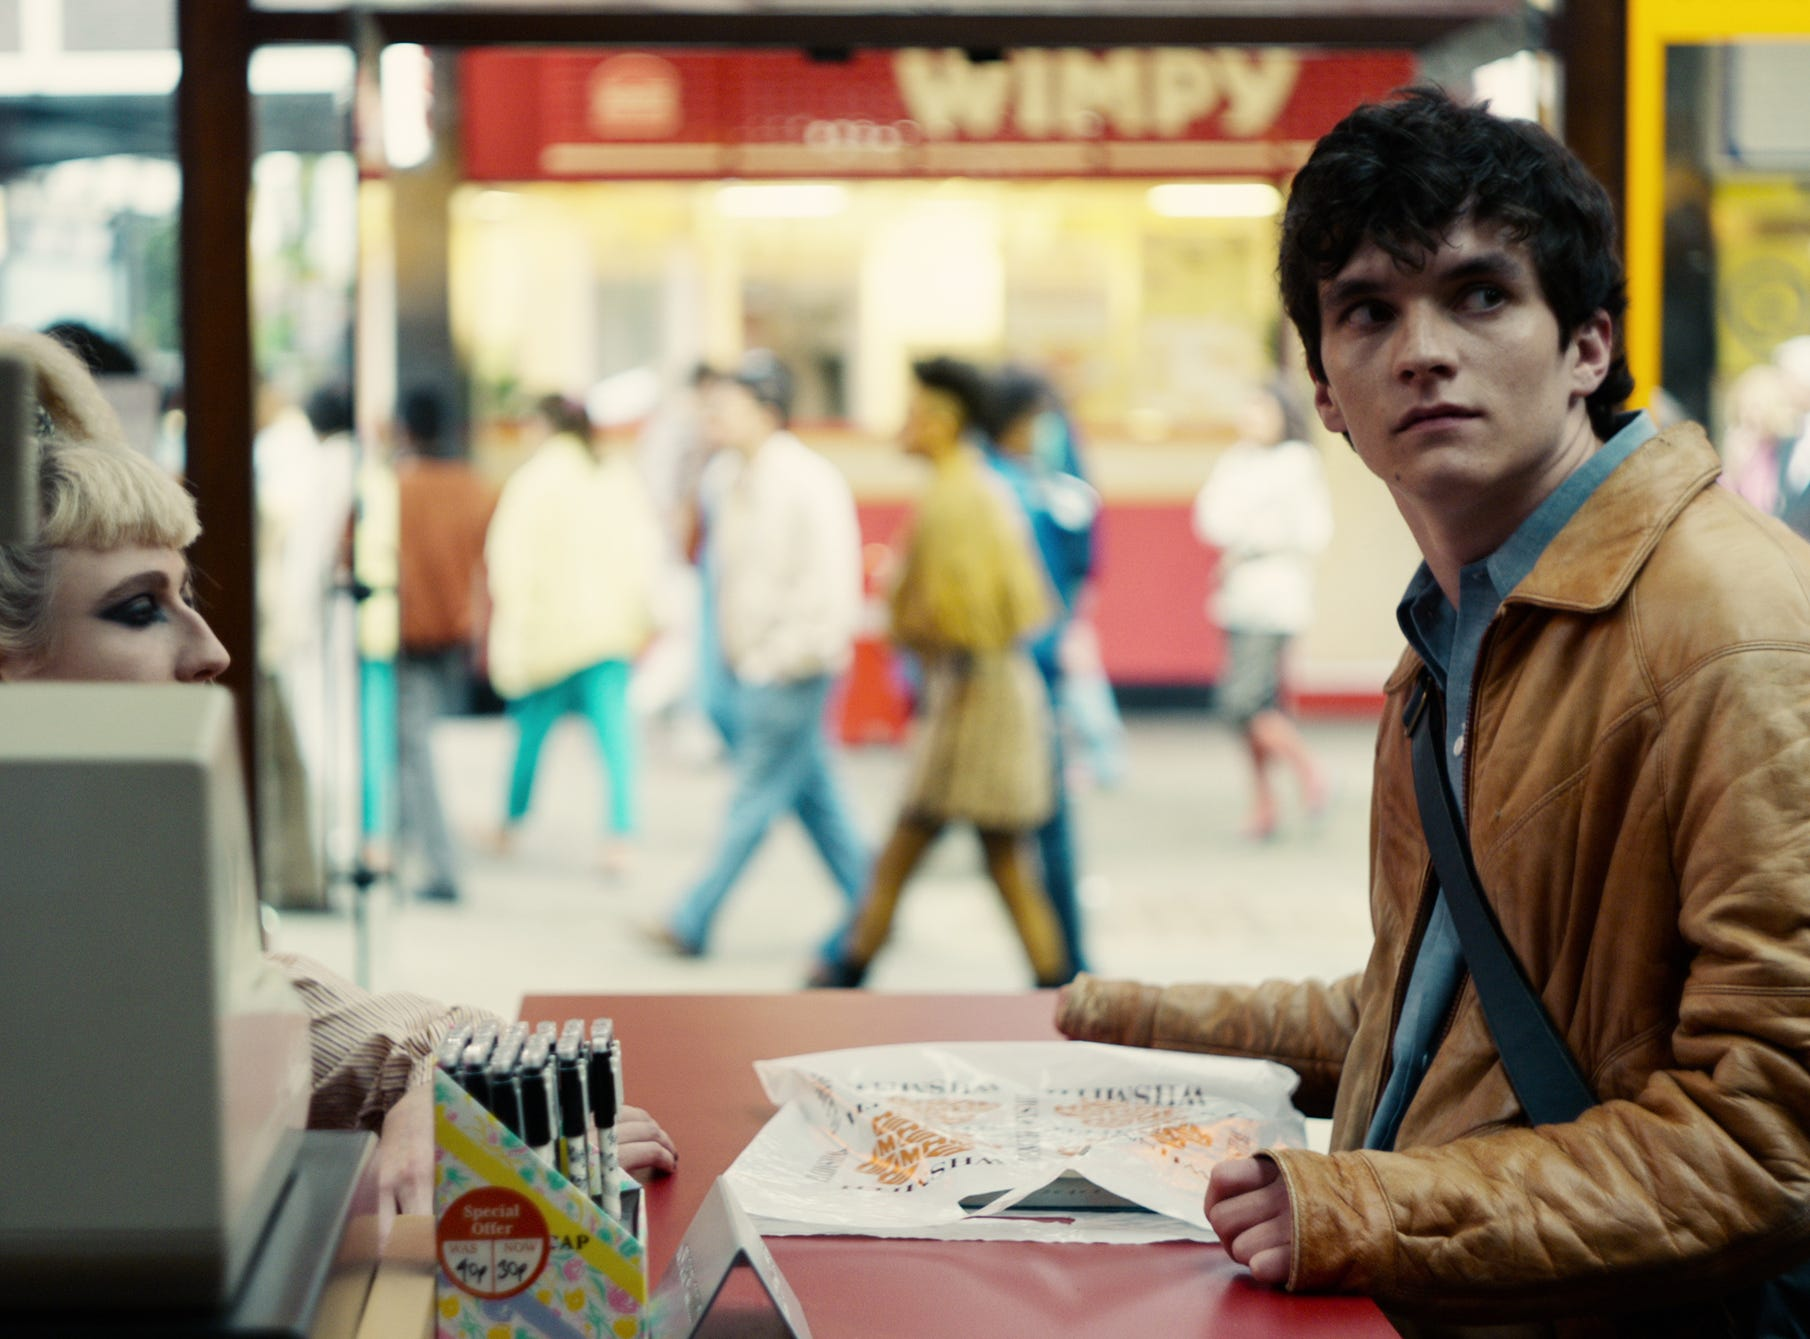 Fionn Whitehead in 'Black Mirror: Bandersnatch'